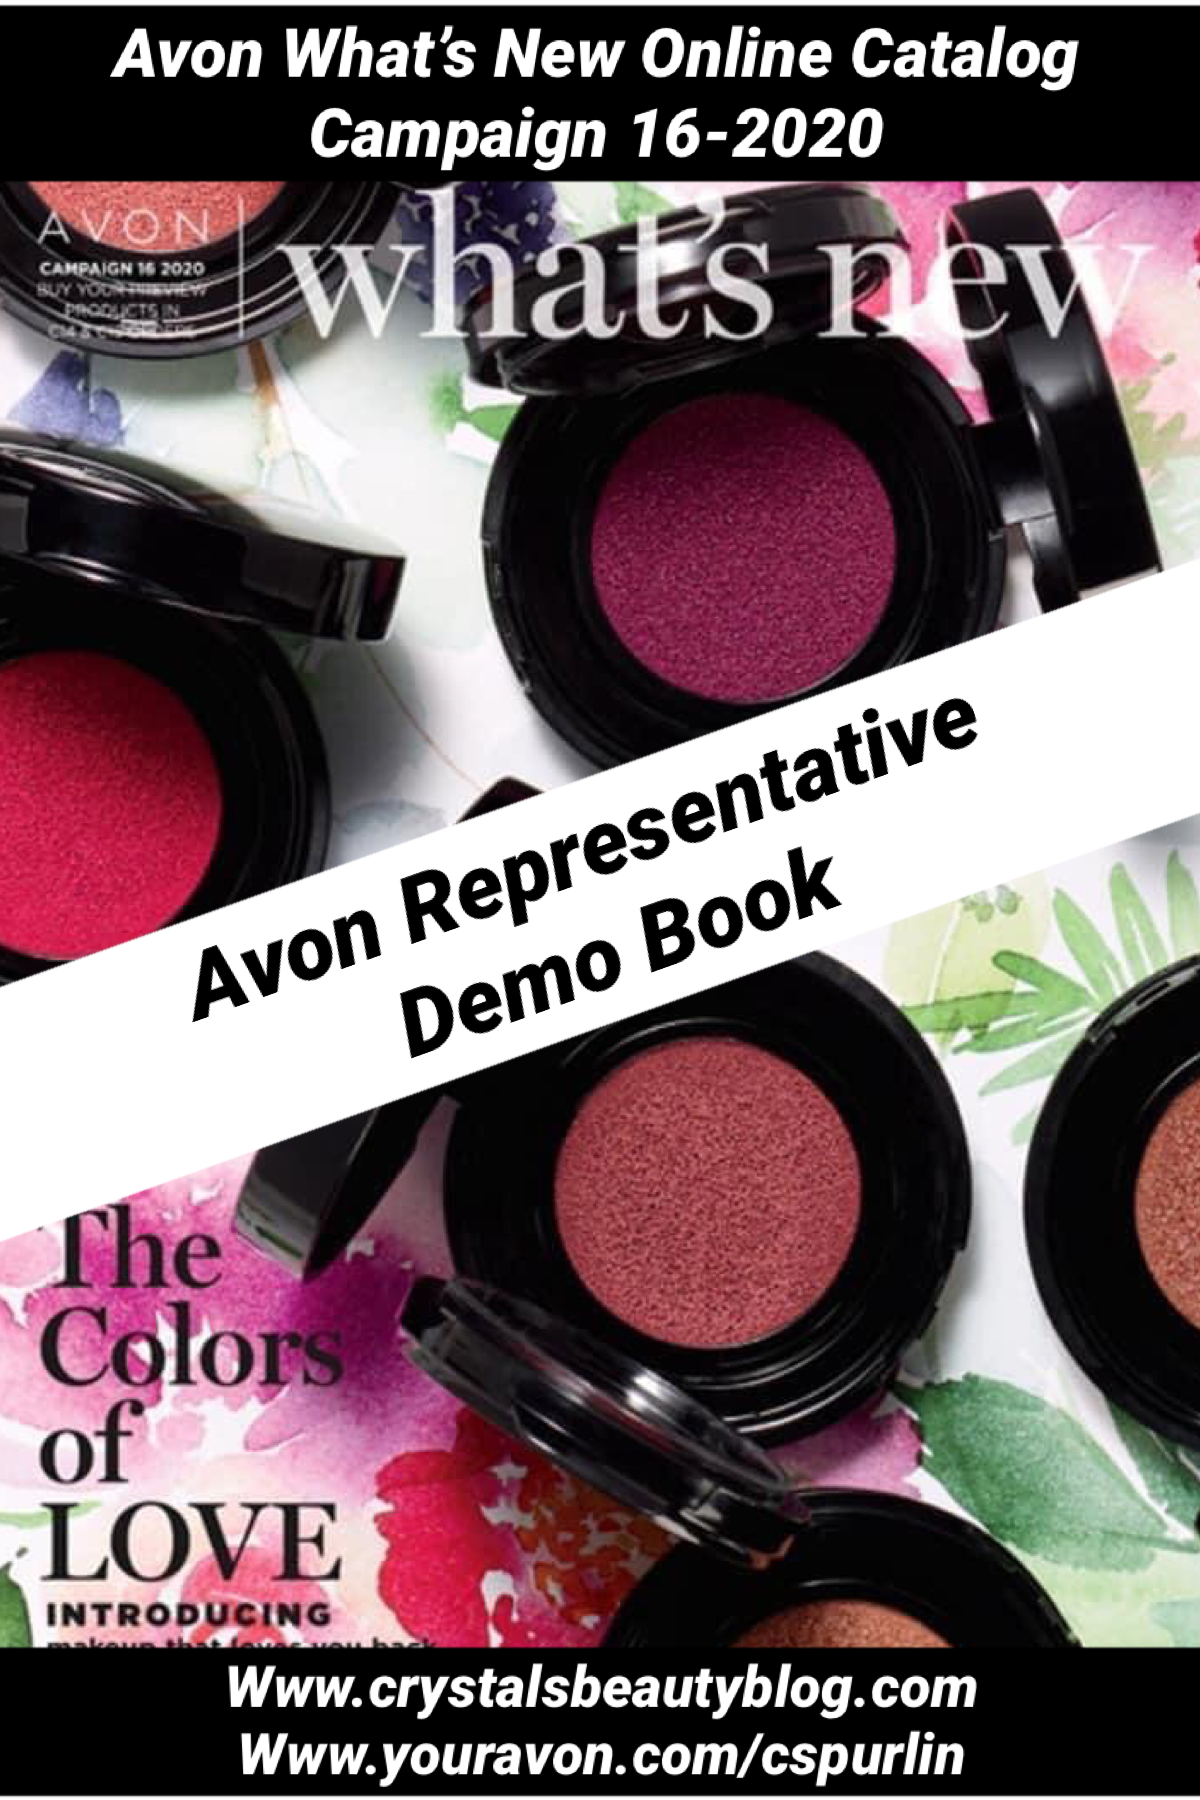 Avon What's New Campaign 162020 Online Catalog Crystal